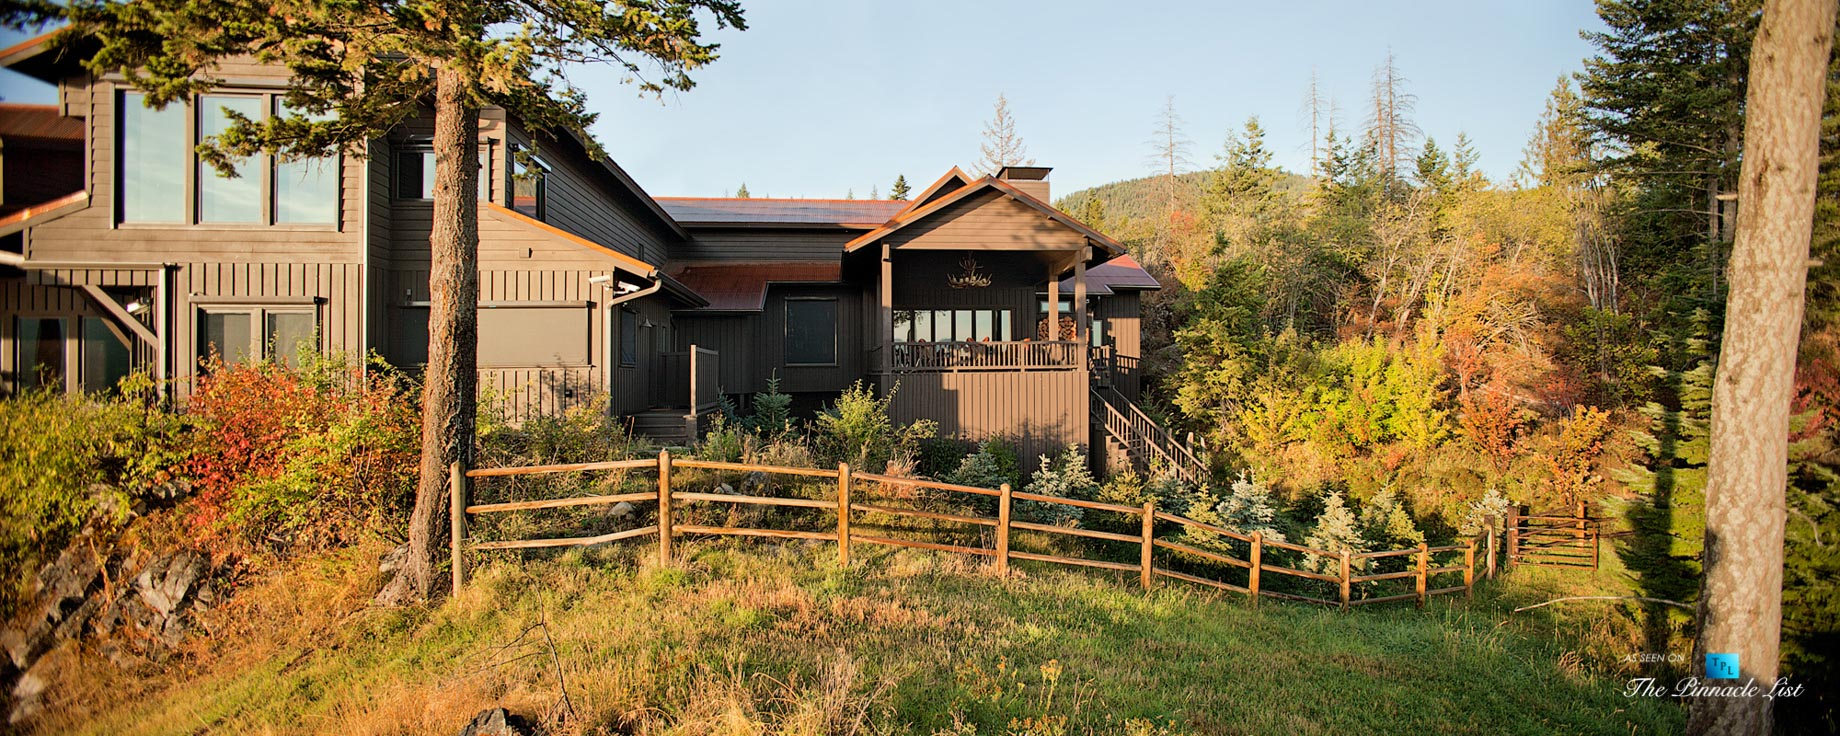 Thunder Ranch - 7095 Bottle Bay Rd, Sagle, ID, USA